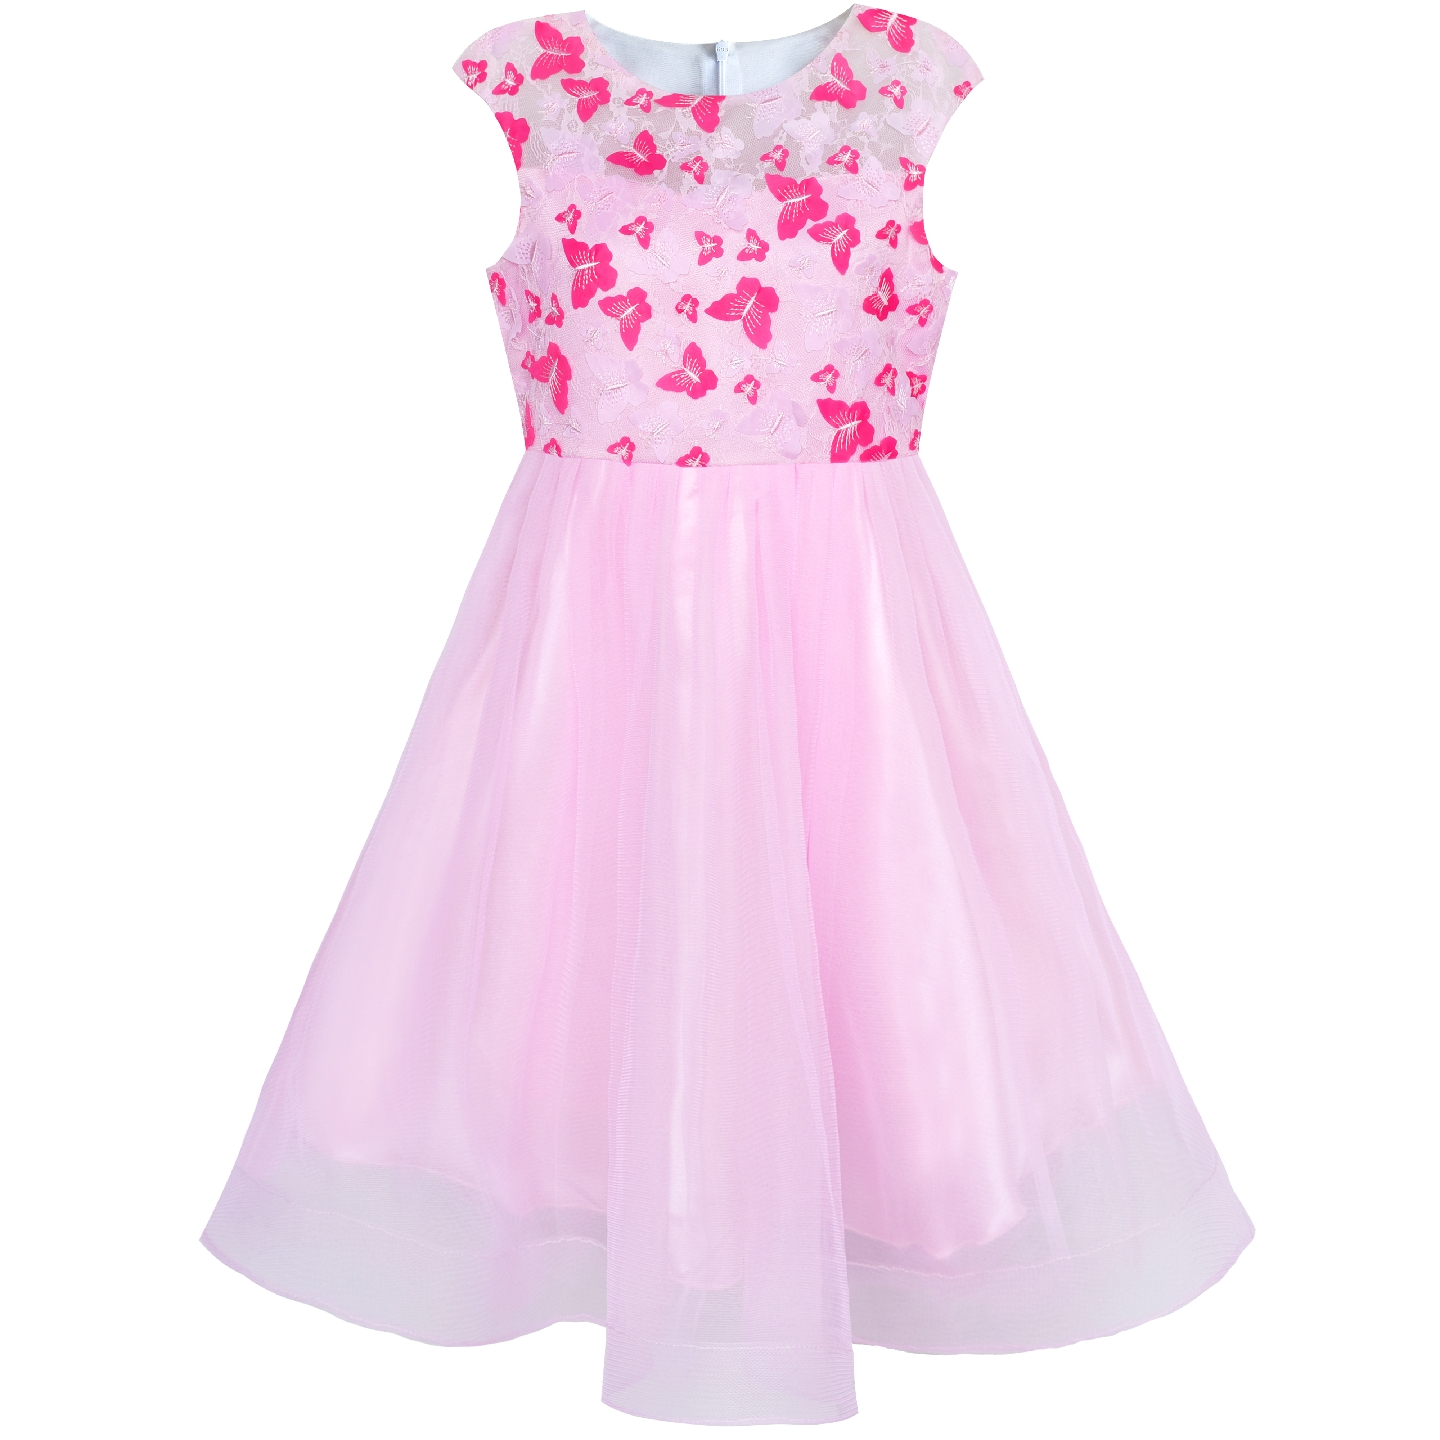 Flower Girl Dress Butterfly Pink Bridal Veil Wedding Bridesmaid 2019 Summer Princess Party Dresses Kids Clothes Pageant Sundress carbon fiber vinyl film wrapping scraper tools bubble window wrapping film squeegee scraper car styling stickers accessories